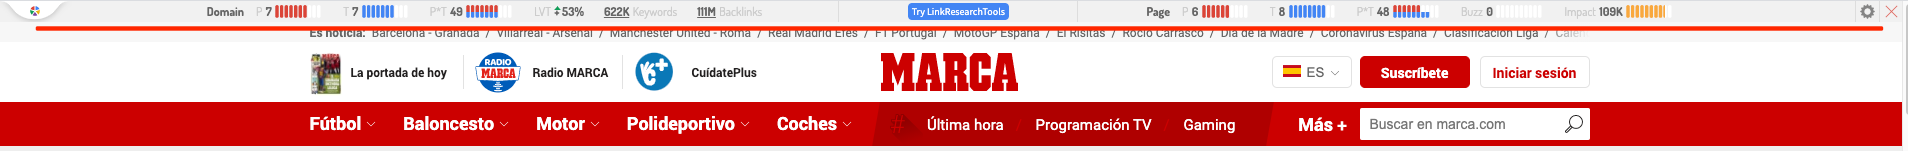 marca link research seo tool